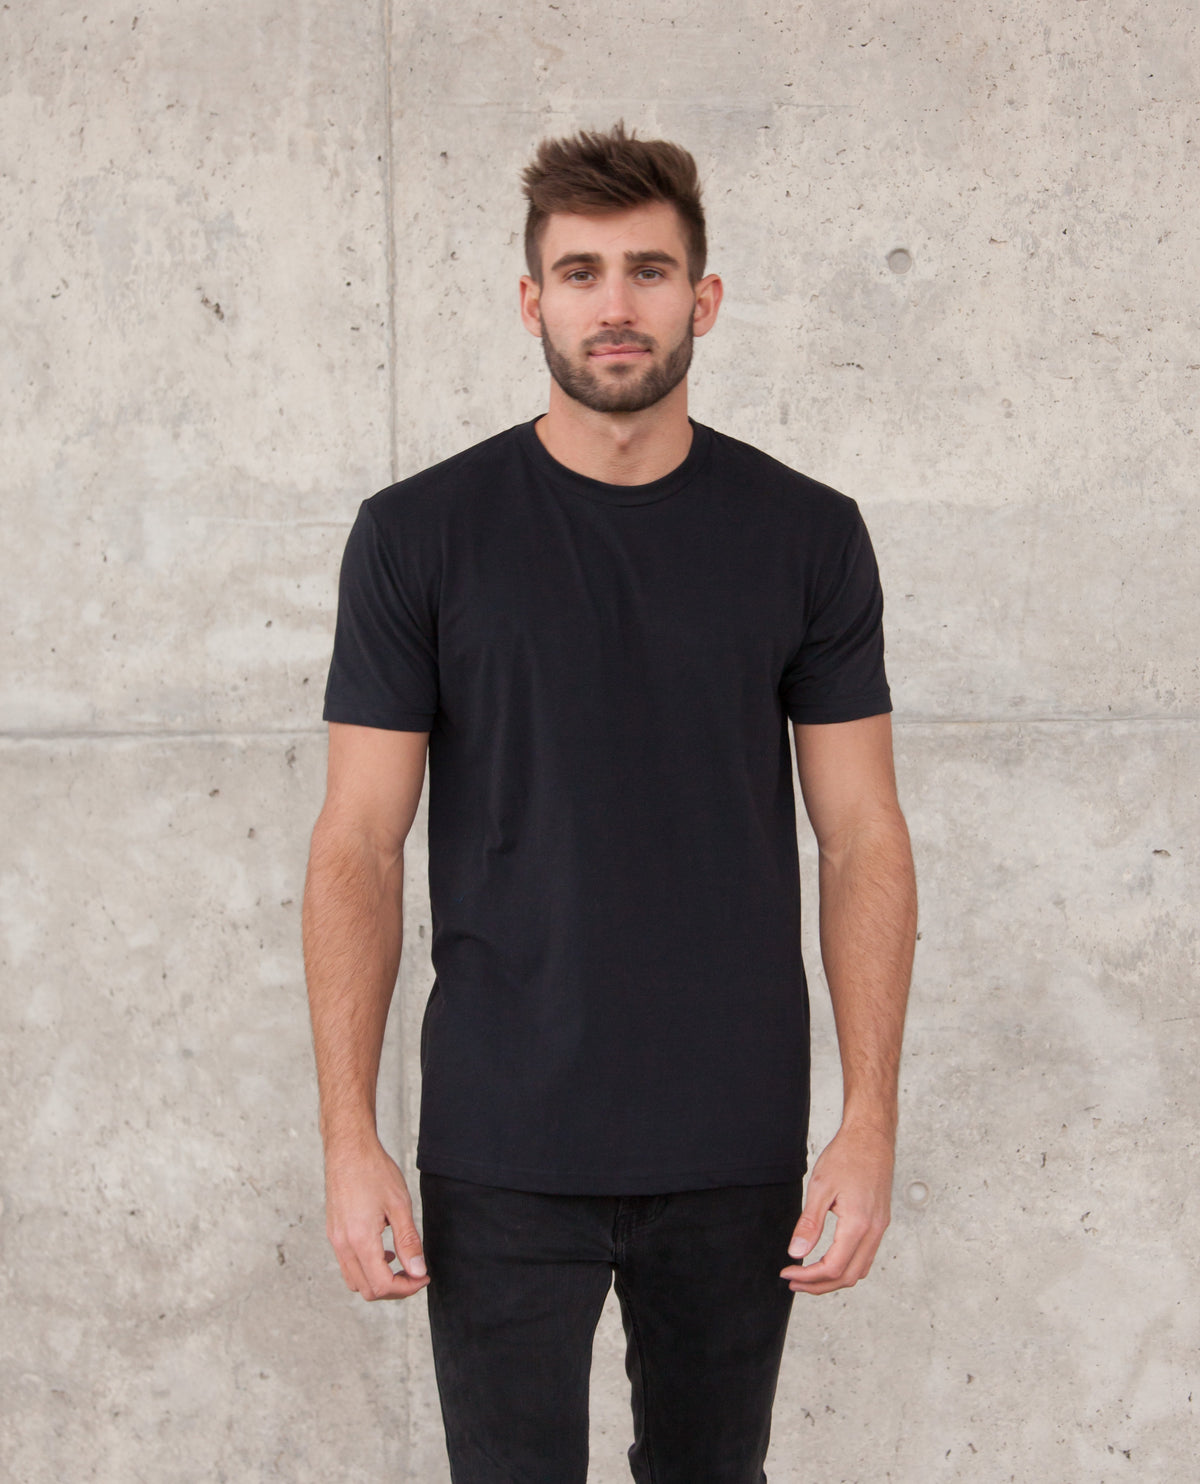 MAGO black short sleeve t-shirt